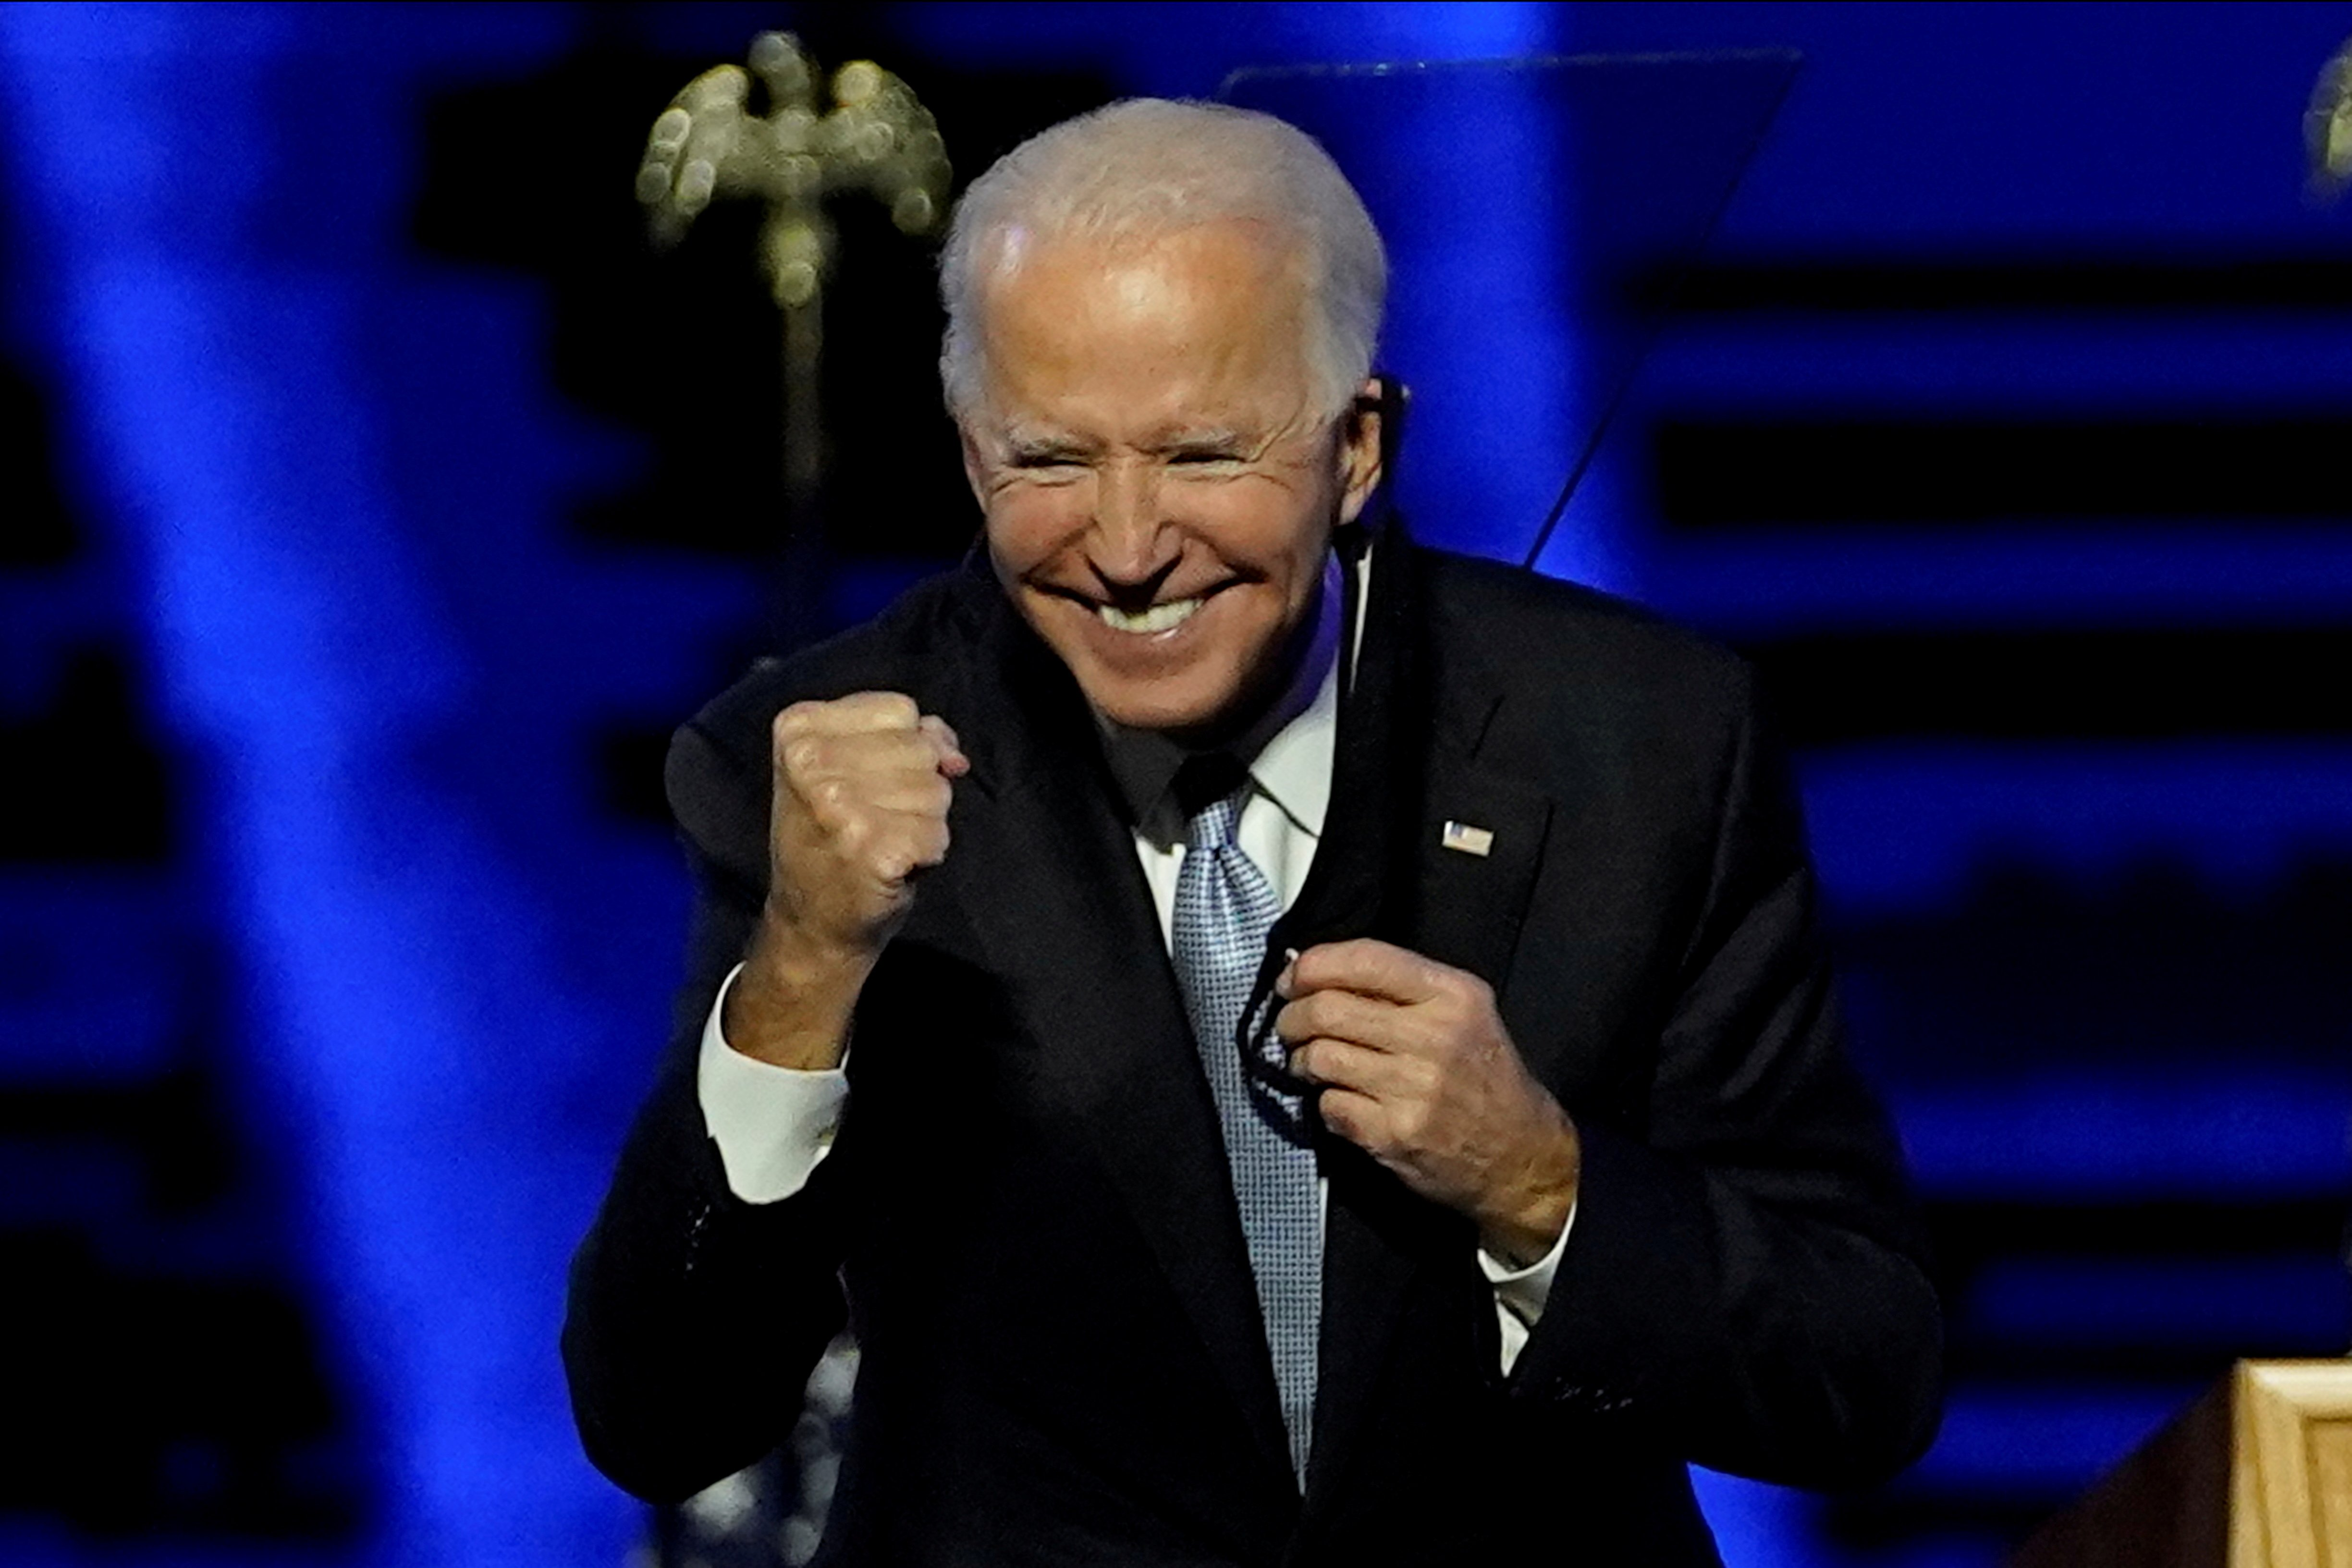 Democratic presidential nominee Joe Biden gestures during his election rally in Wilmington, Del., Nov. 7, 2020, after news media declared he won the presidential election.